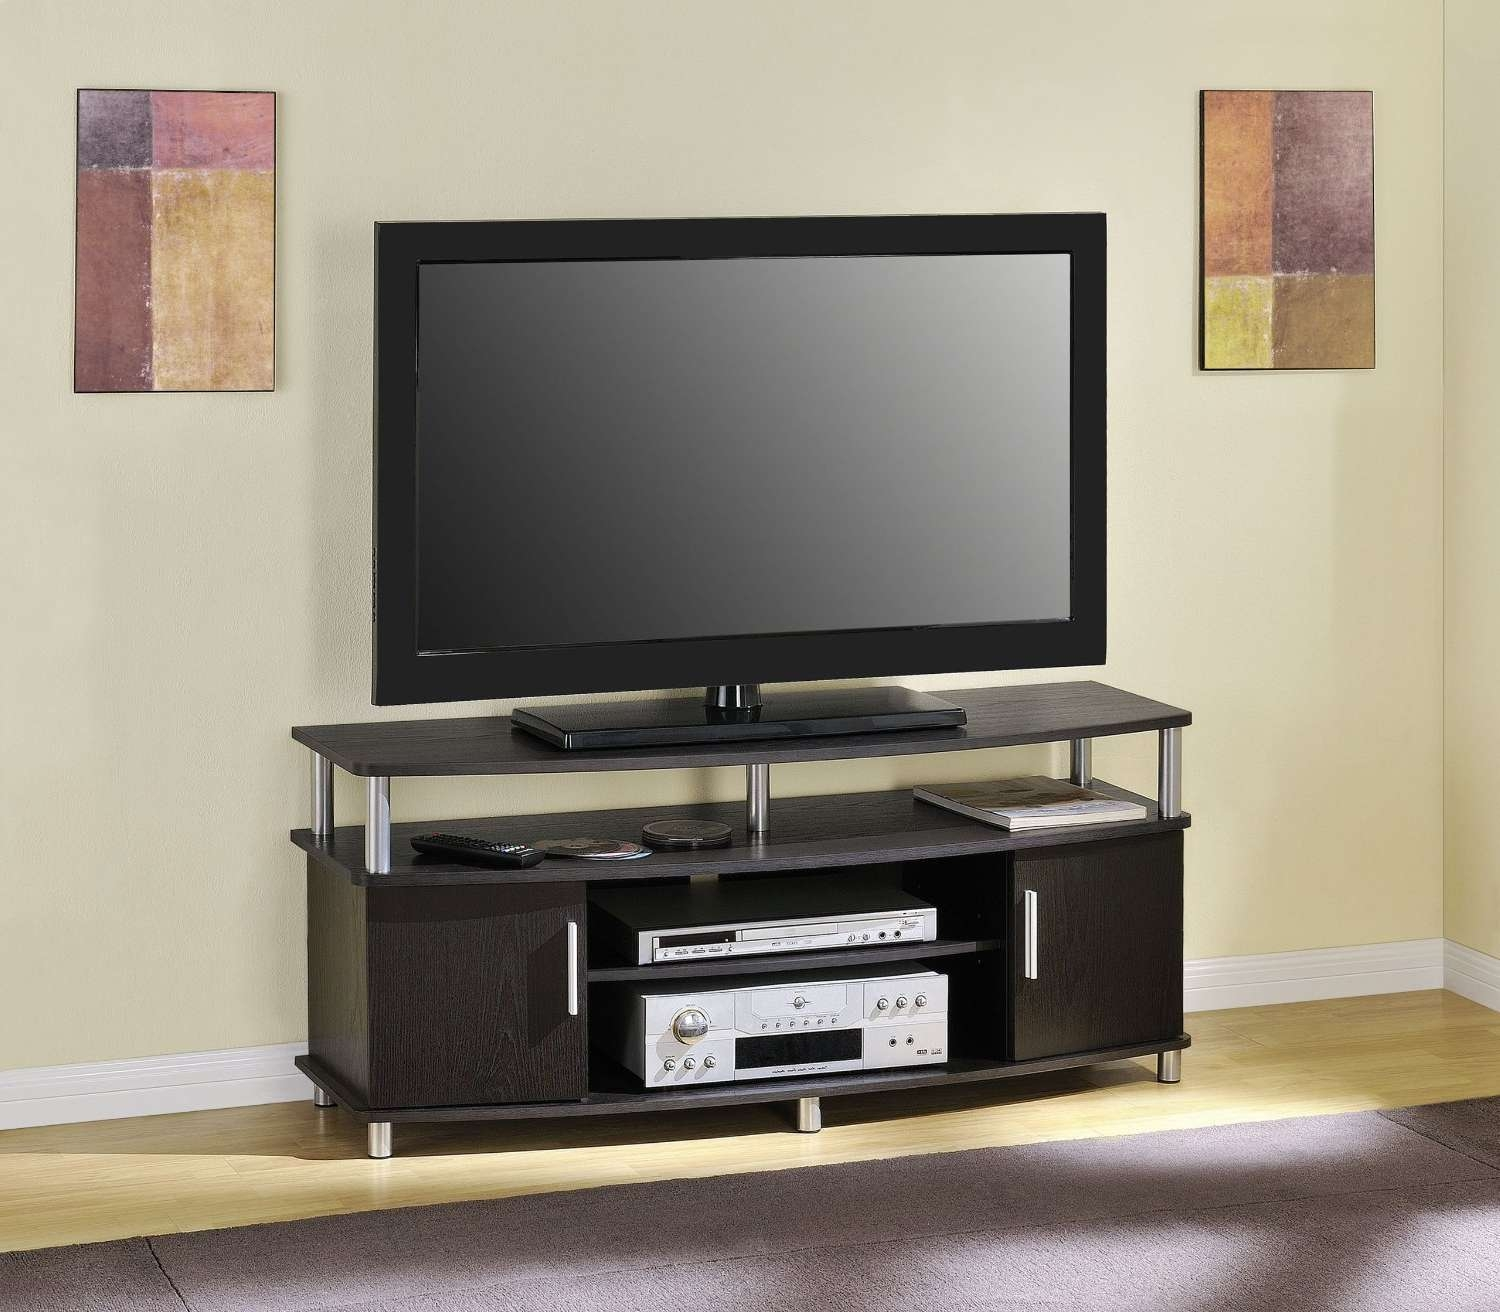 Small Black Oak Wood Tv Stand With Countertop And Cabinet Storage Regarding Modern Tv Stands For Flat Screens (View 13 of 15)